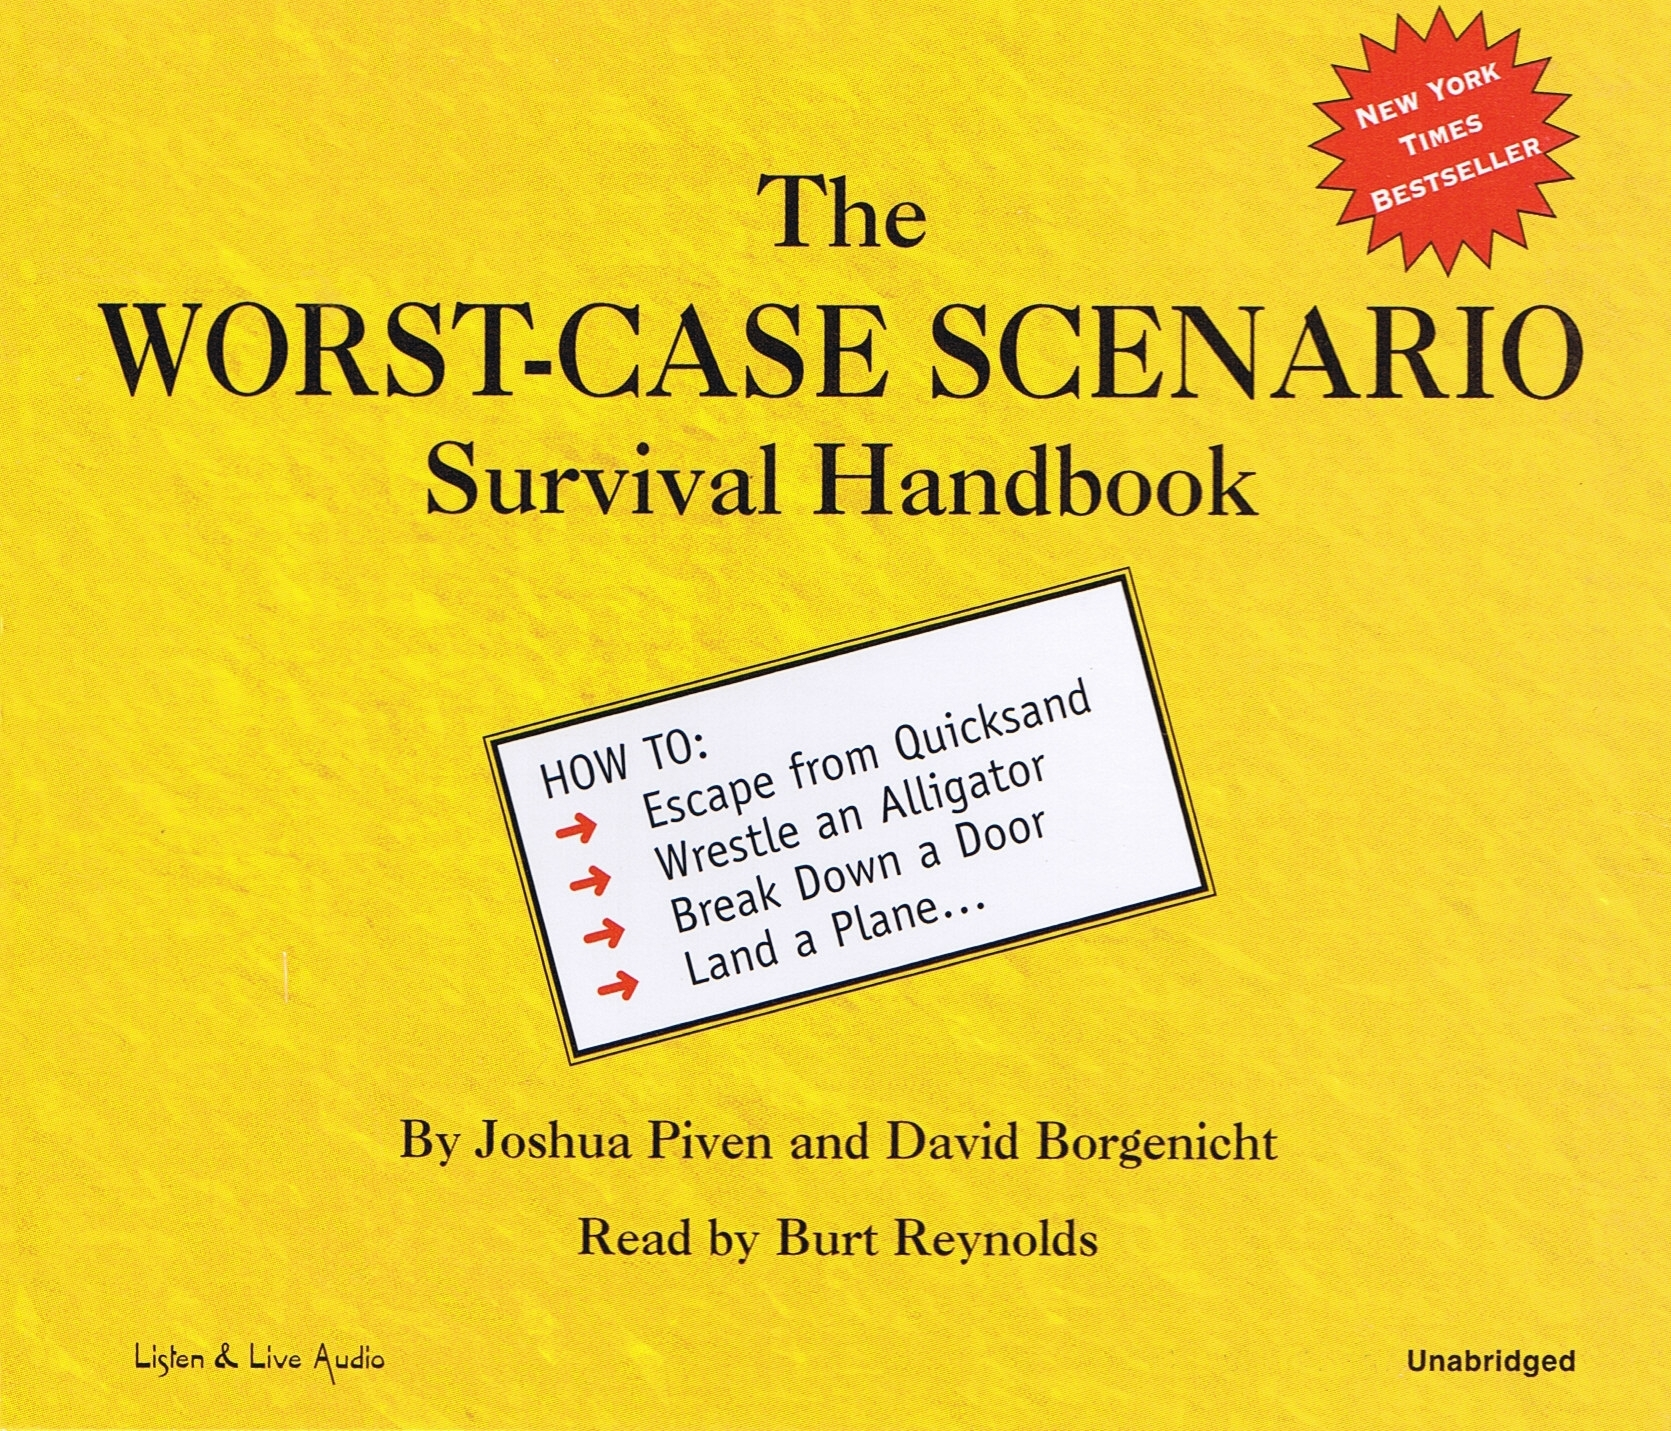 The Worst-Case Scenario Survival Handbook [2CD]